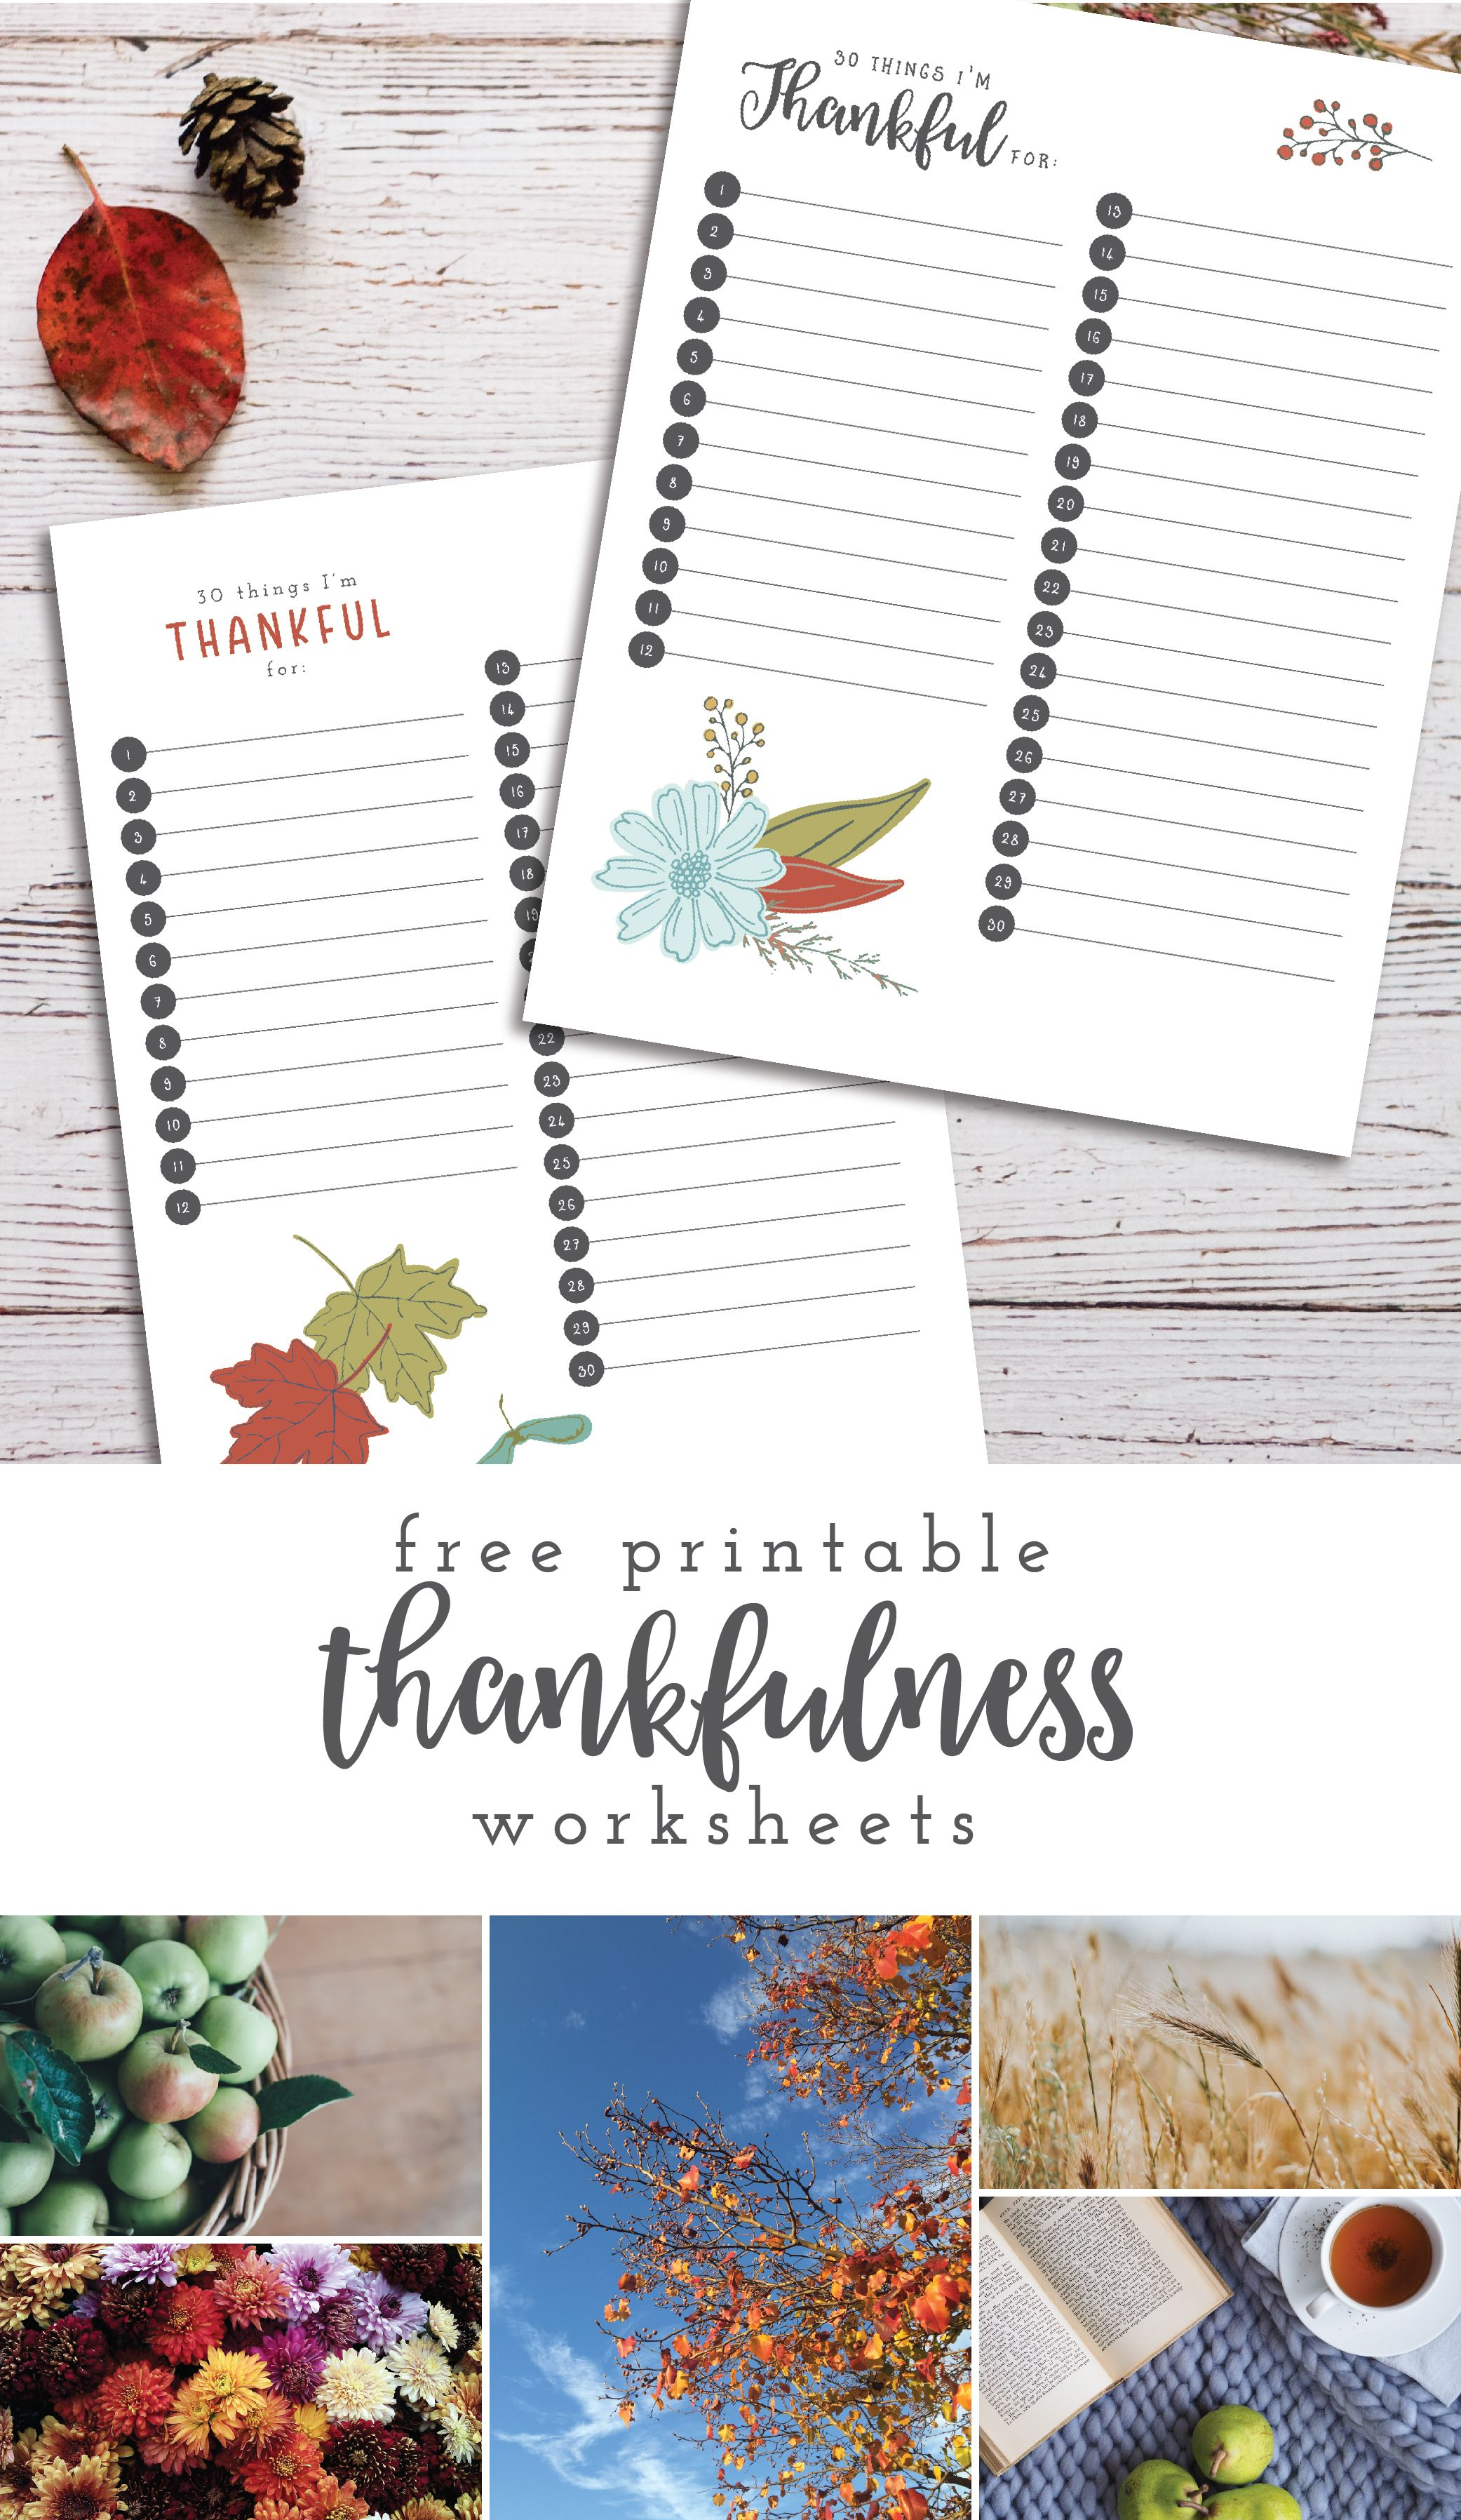 Free Printable Thankfulness Worksheets For Autumn